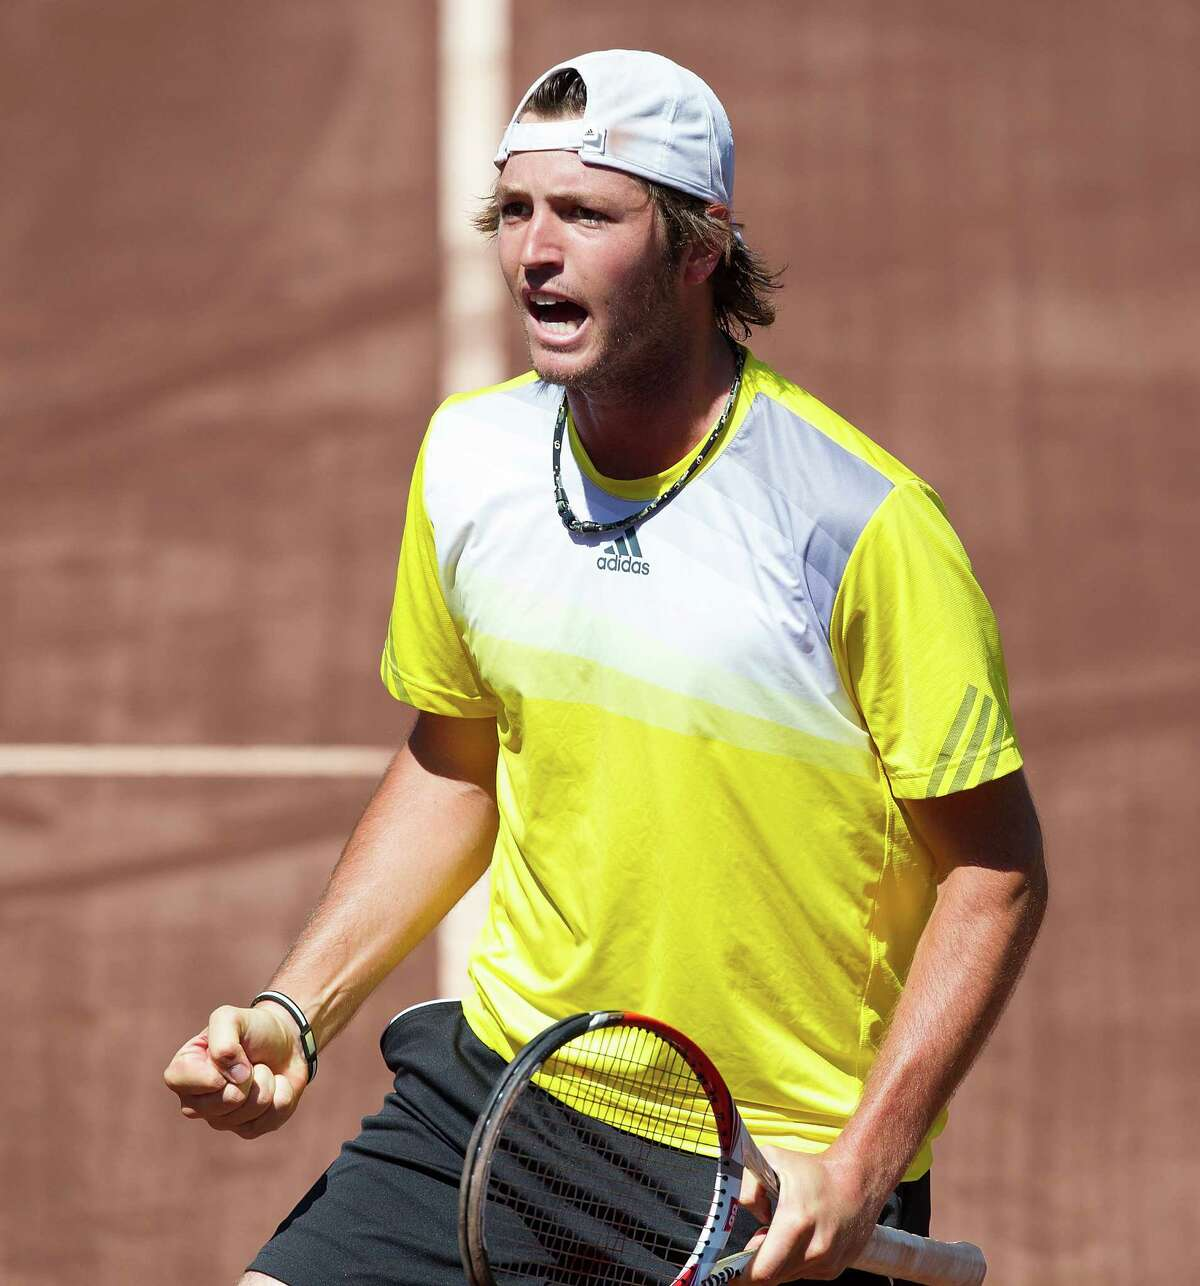 Rhyne Williams reacts after a win during the U.S. Men's Clay Court Championships.